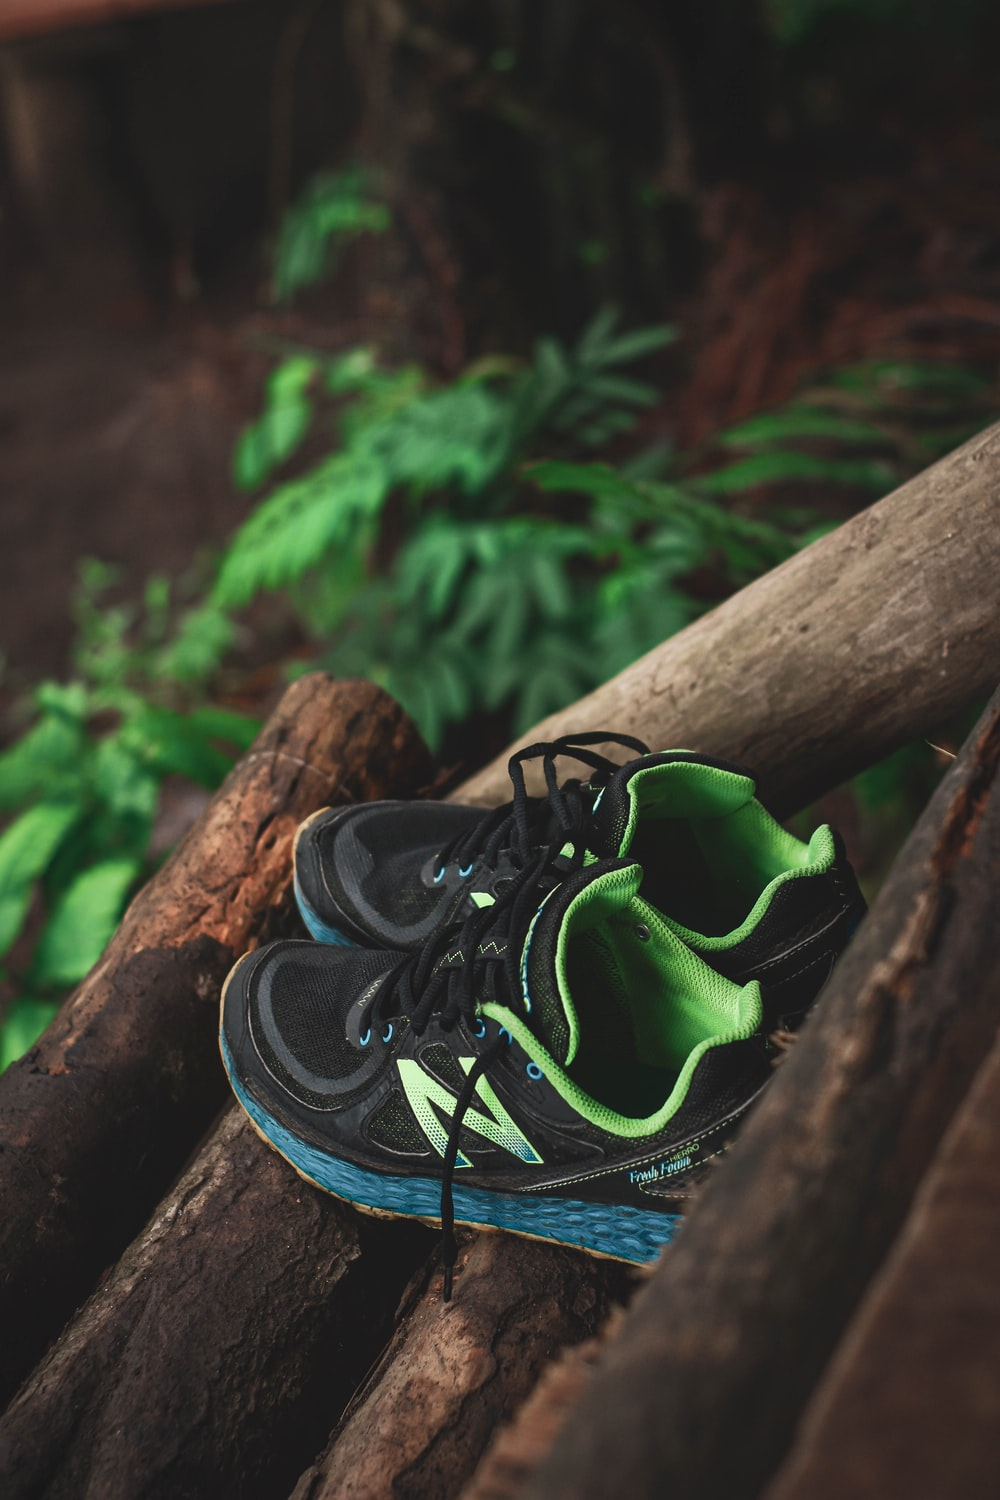 black and green nike athletic shoes on brown wooden log